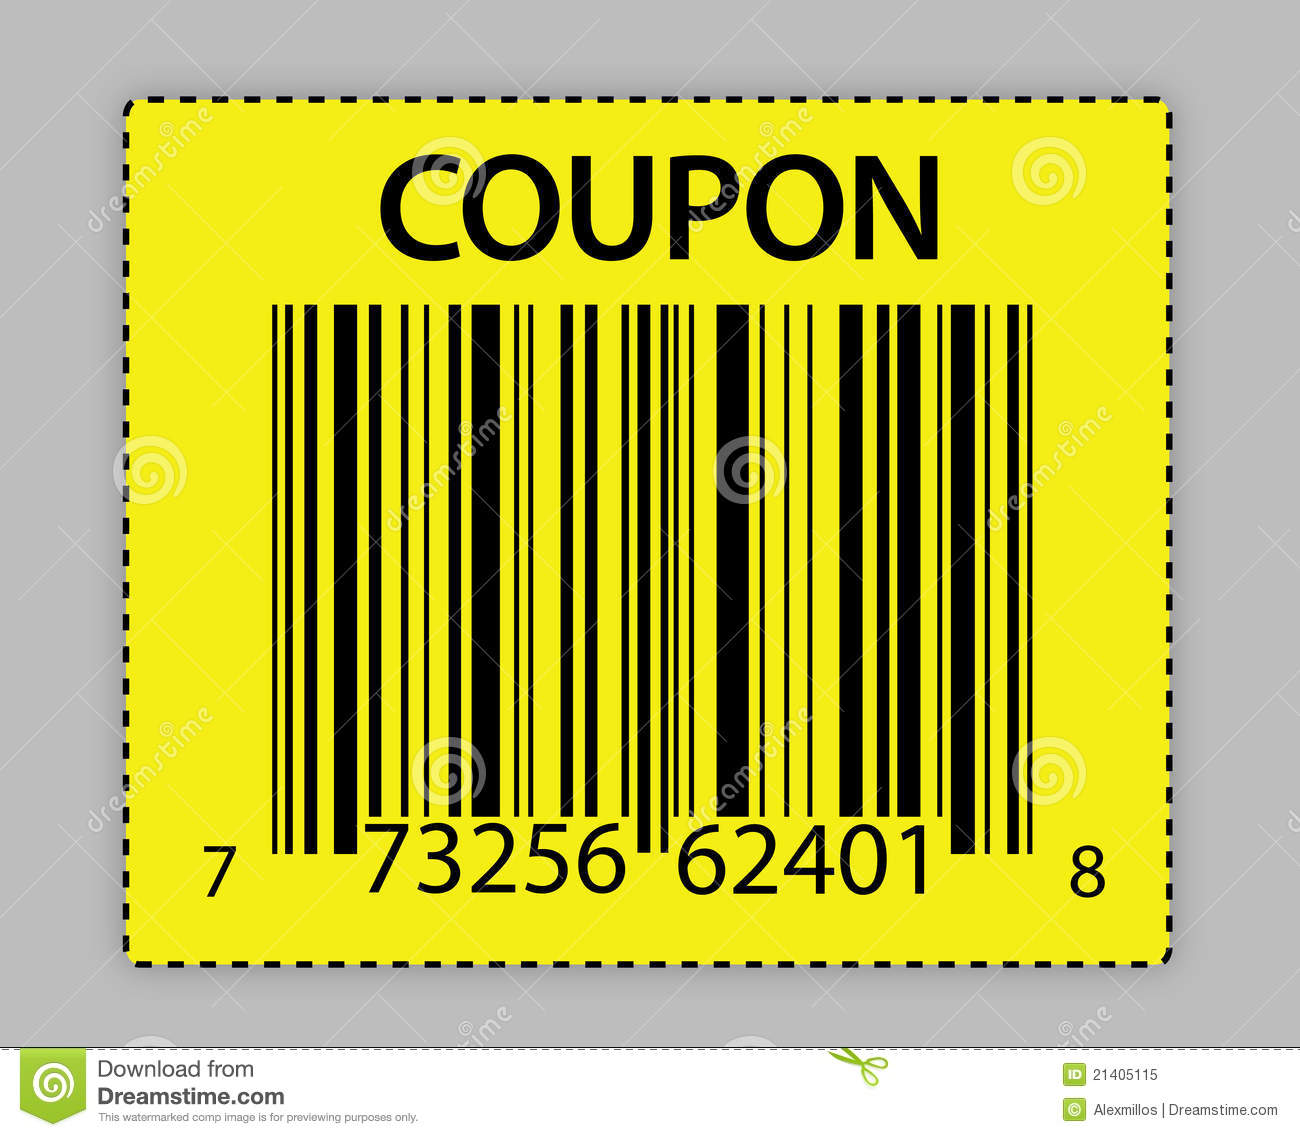 Title * 20 Characters or less Discount * 20 Characters or less Barcode to be scanned at the Point of Sale (use Imager Scanner) digits Enter the website where people can use your coupon * Locations where people can redeem your coupon. Promo code if needed 20 Characters or less Describe your offer 90 Characters or less. Terms. Expiry Date.